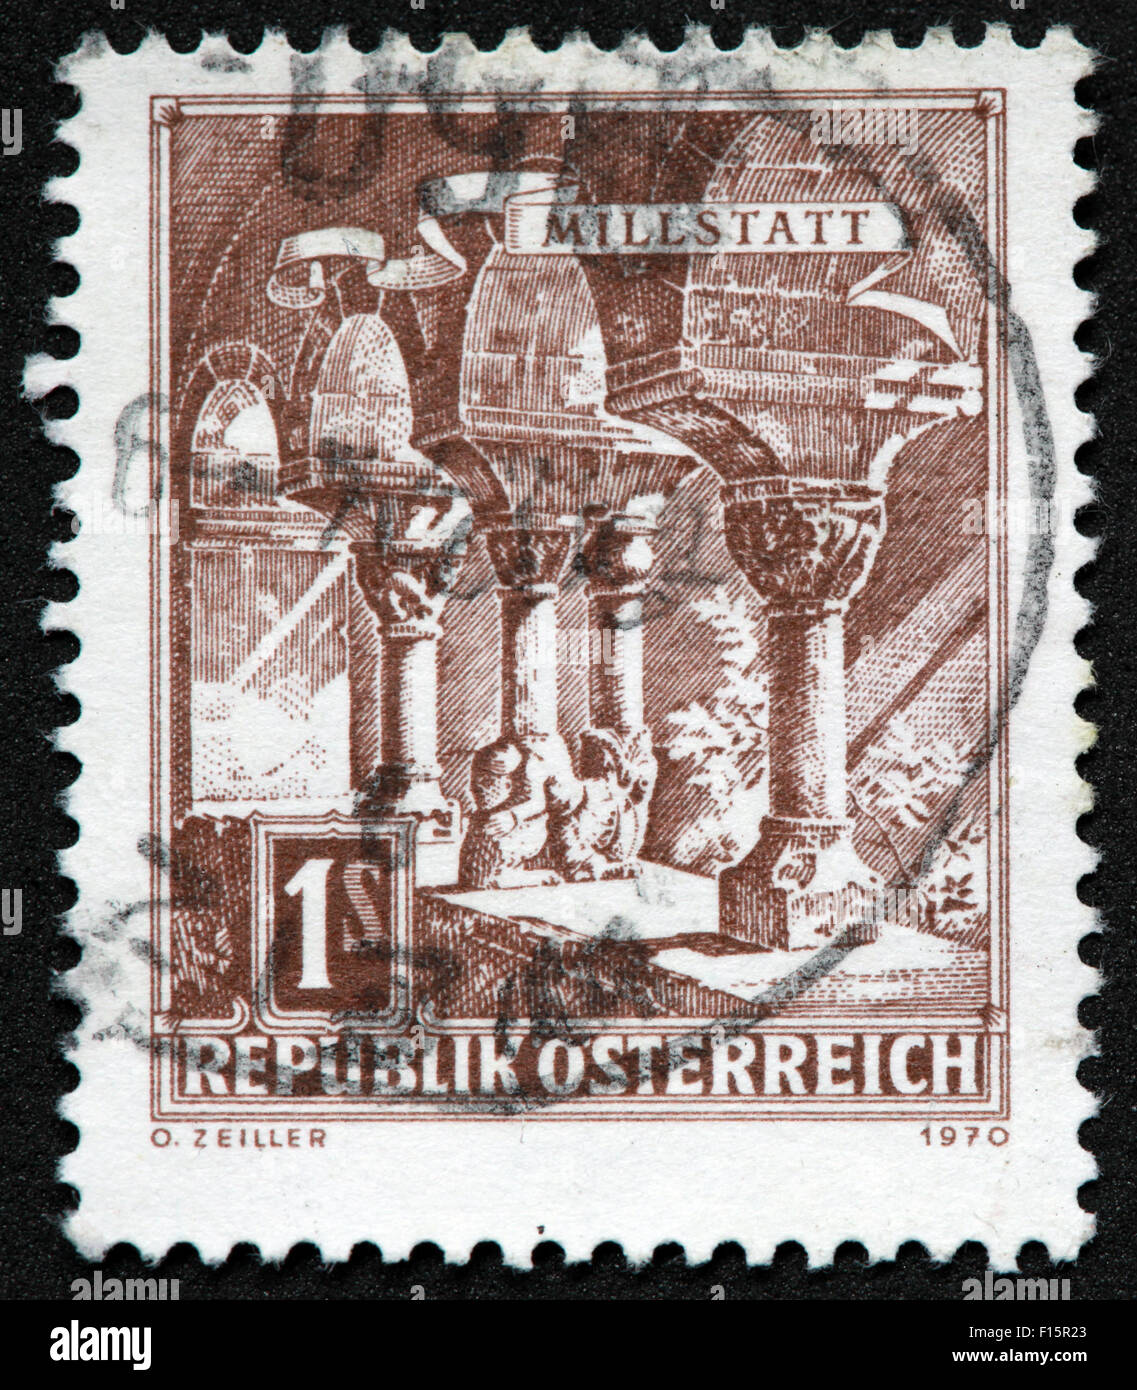 Millstatt 1s Republik Osterreich 1970 O.Zeiller Brown Stamp - Stock Image